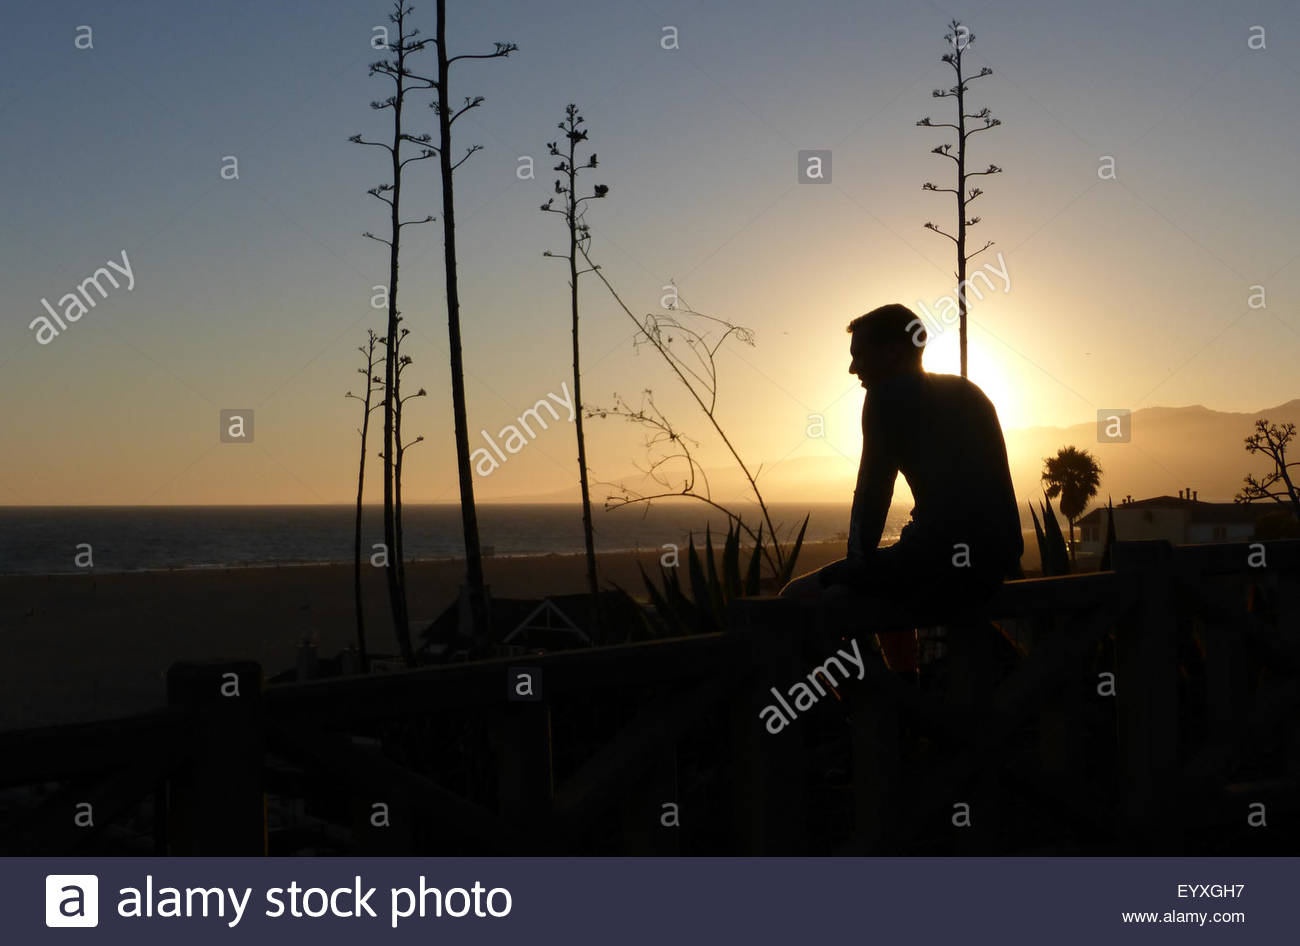 Silhouette of Person Sitting on Wall During Sunset - Stock Image